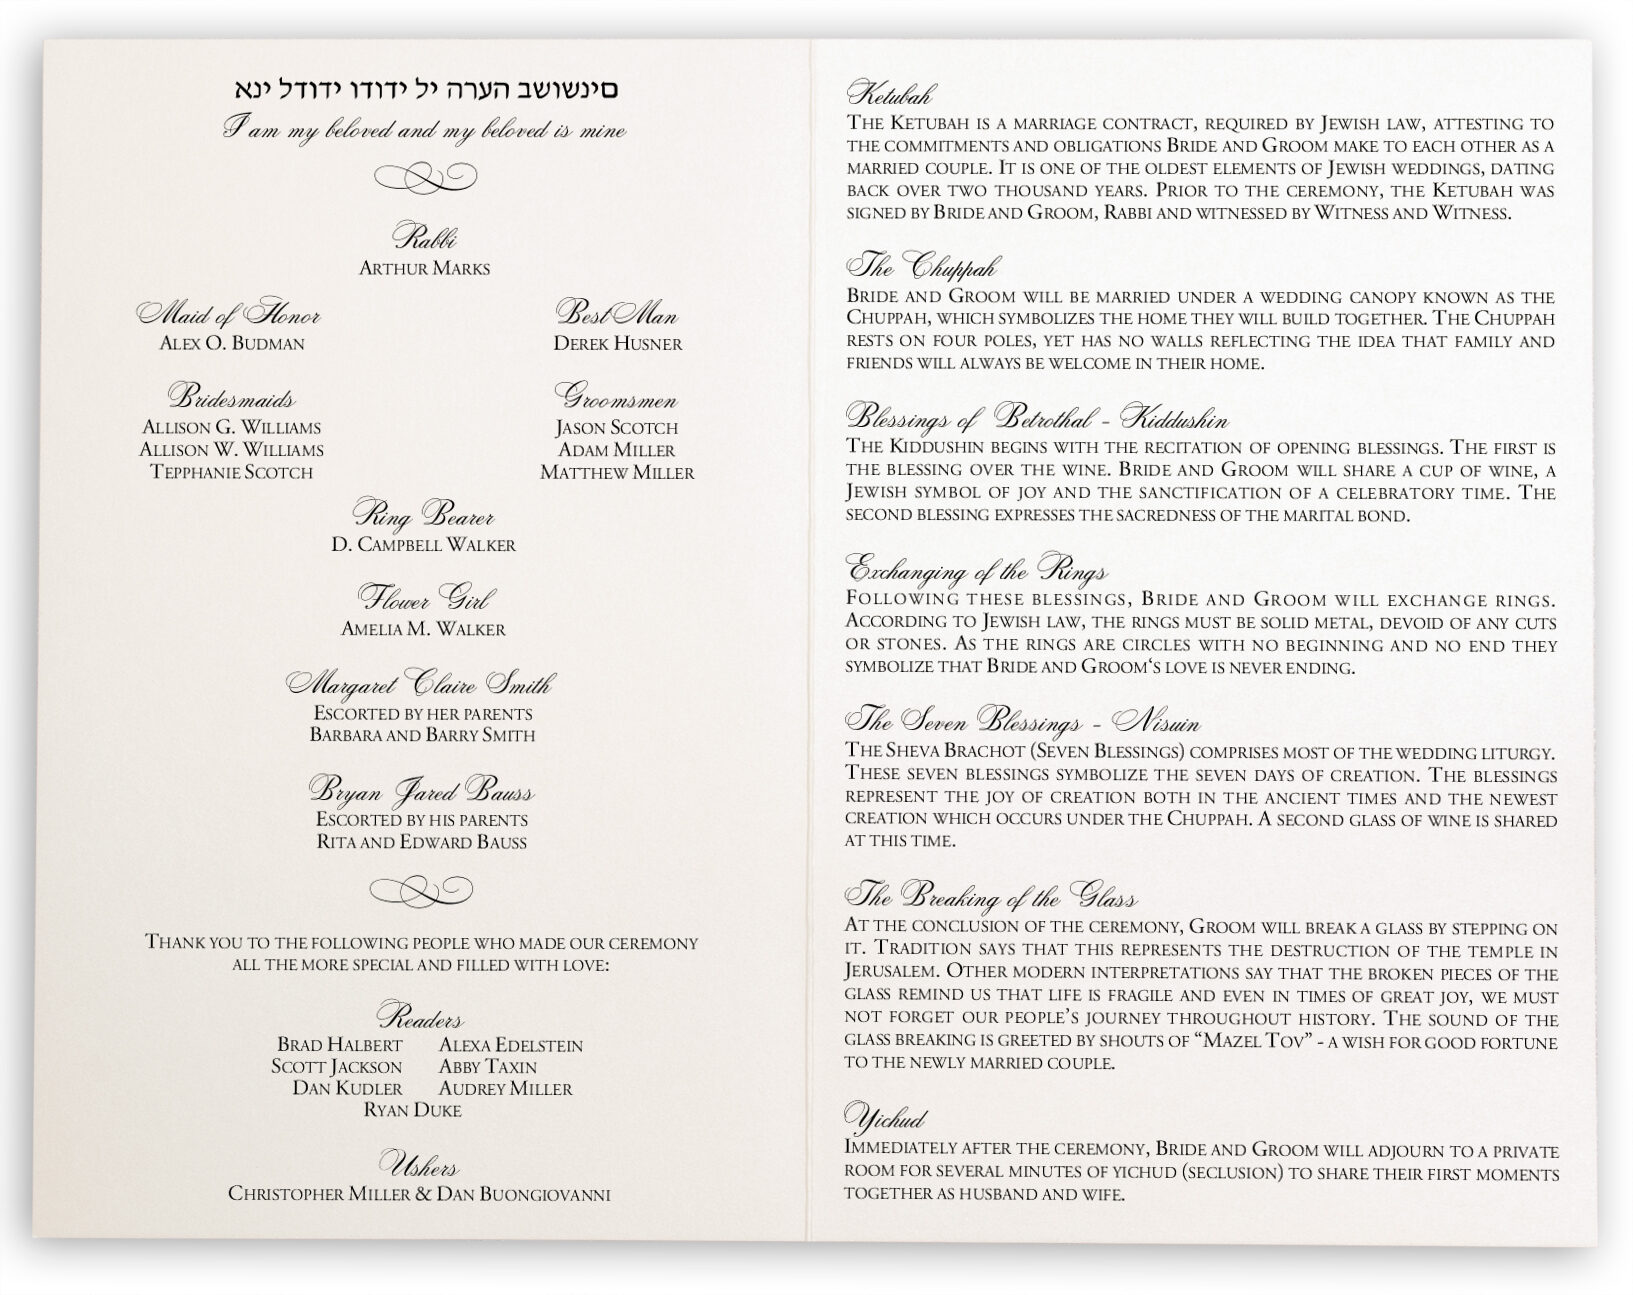 Wedding Ceremony Programs.Hand Of Miriam Jewish Wedding Ceremony Programs With Hamsa